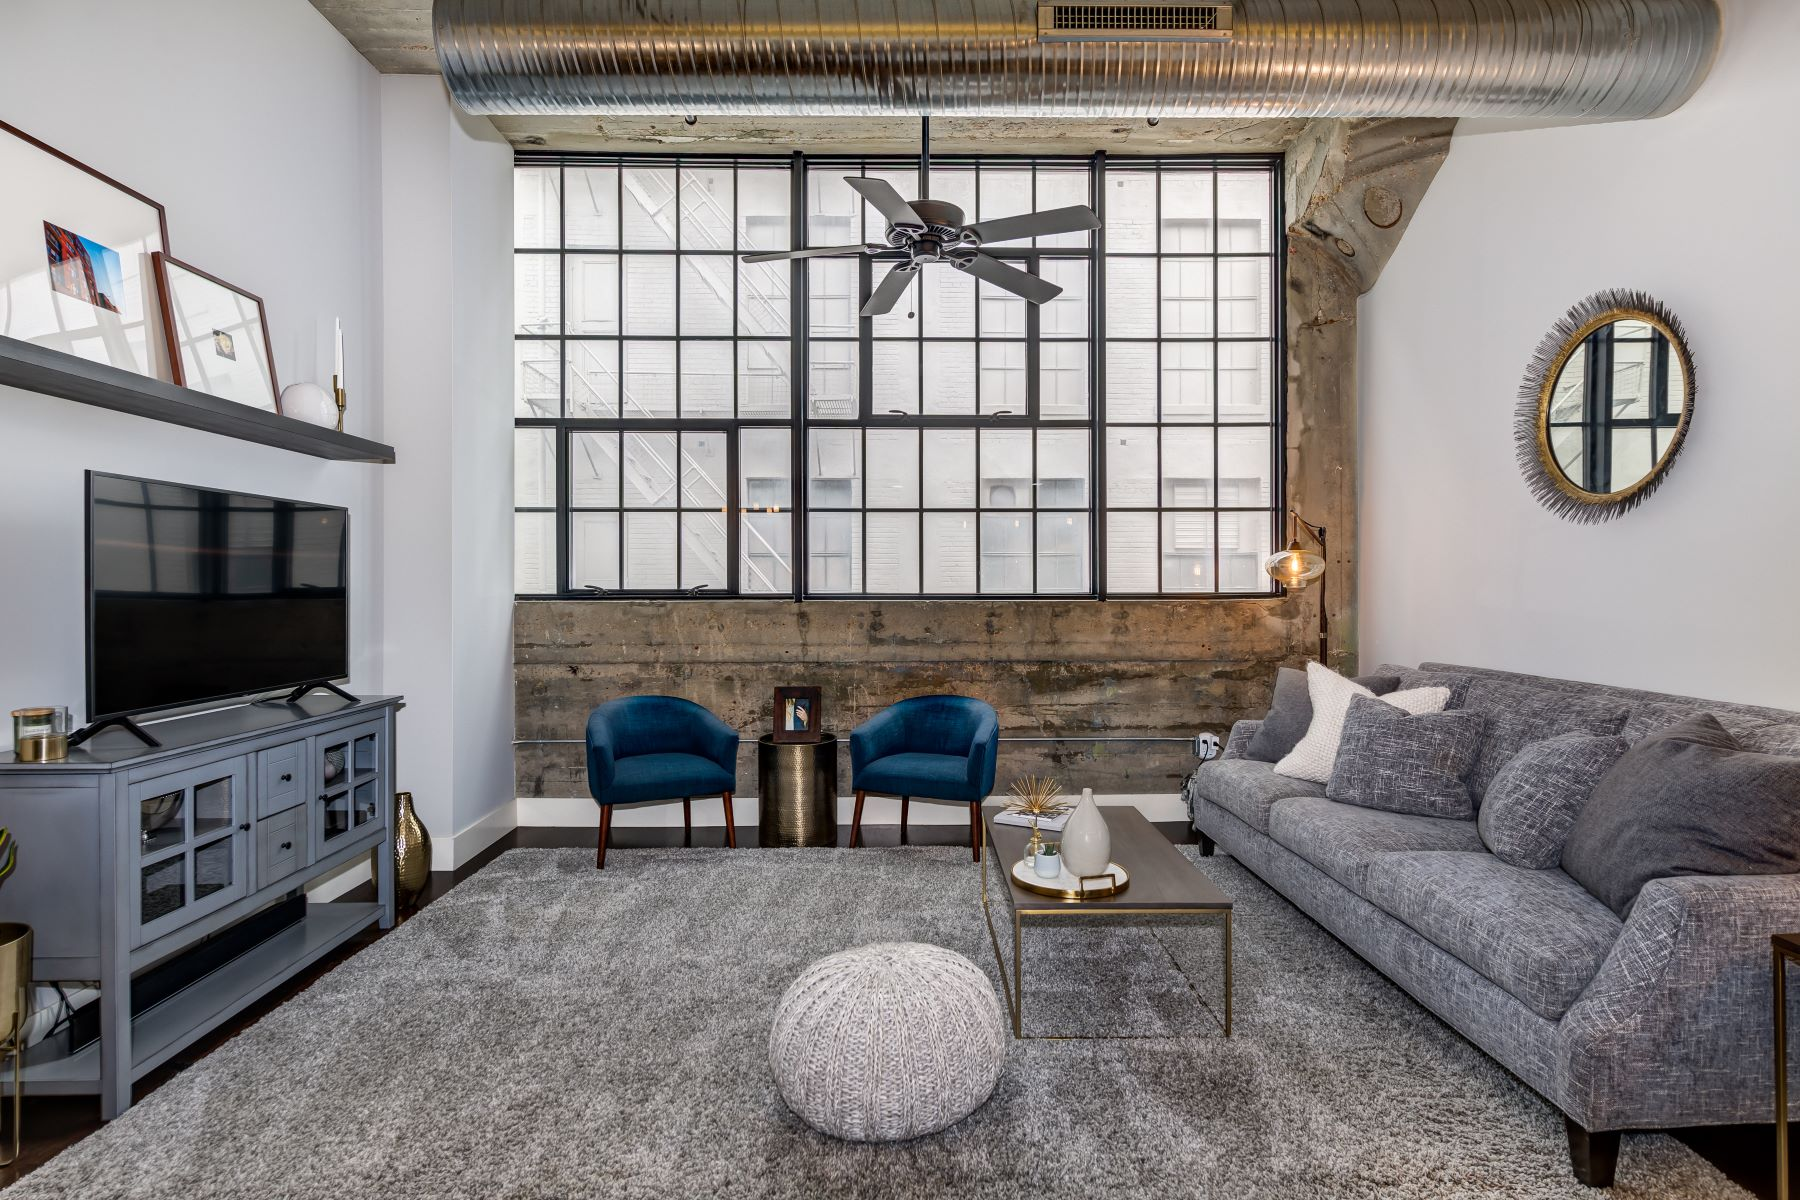 Additional photo for property listing at West End Lofts #427 4100 Forest Park Ave #427 St. Louis, Missouri 63108 United States